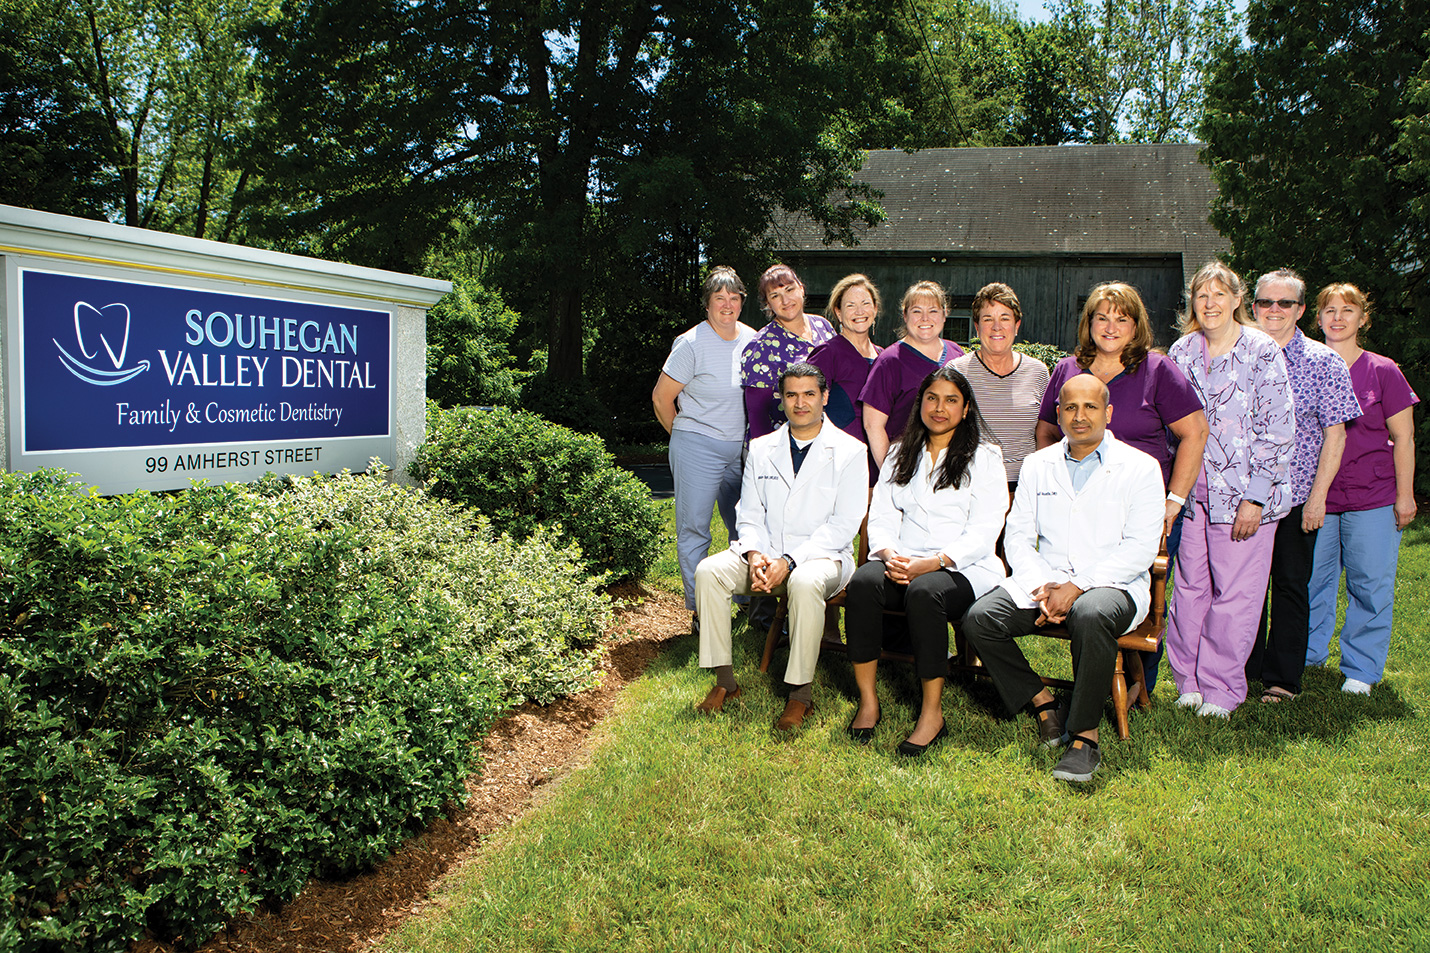 Souhegan Valley Dental